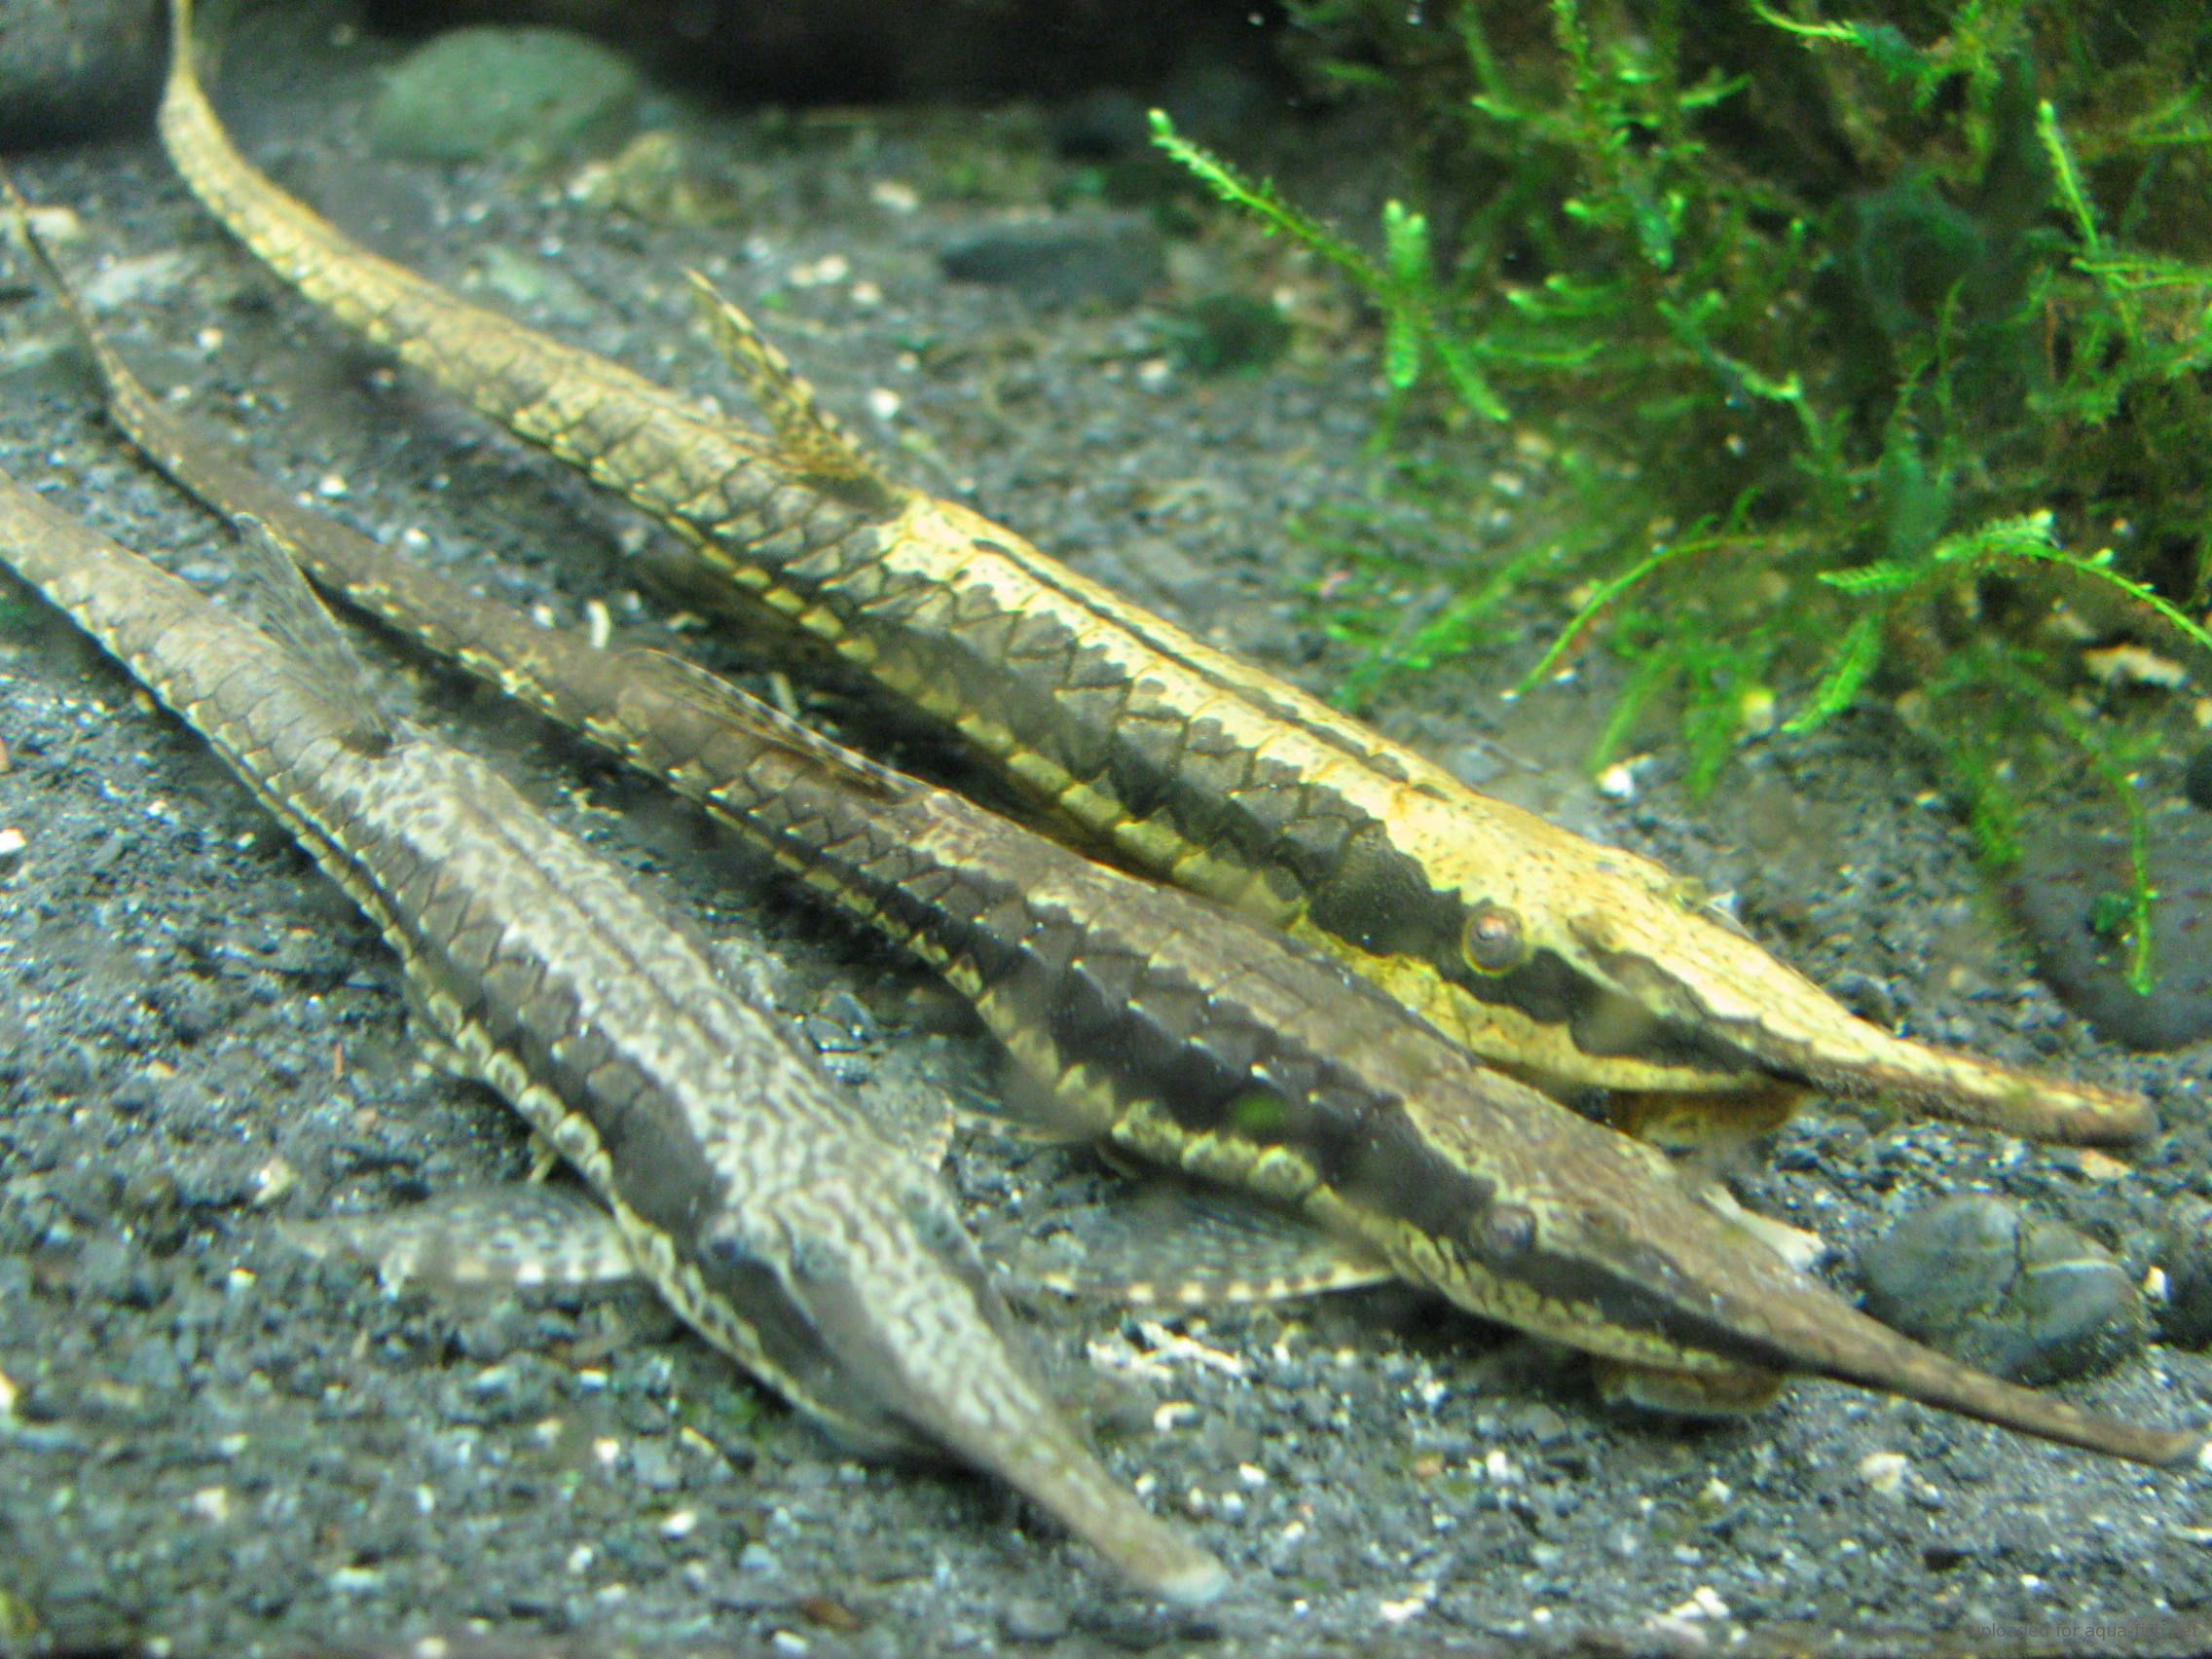 Farlowella catfish twig catfish aquariums and natural for Fish tank catfish